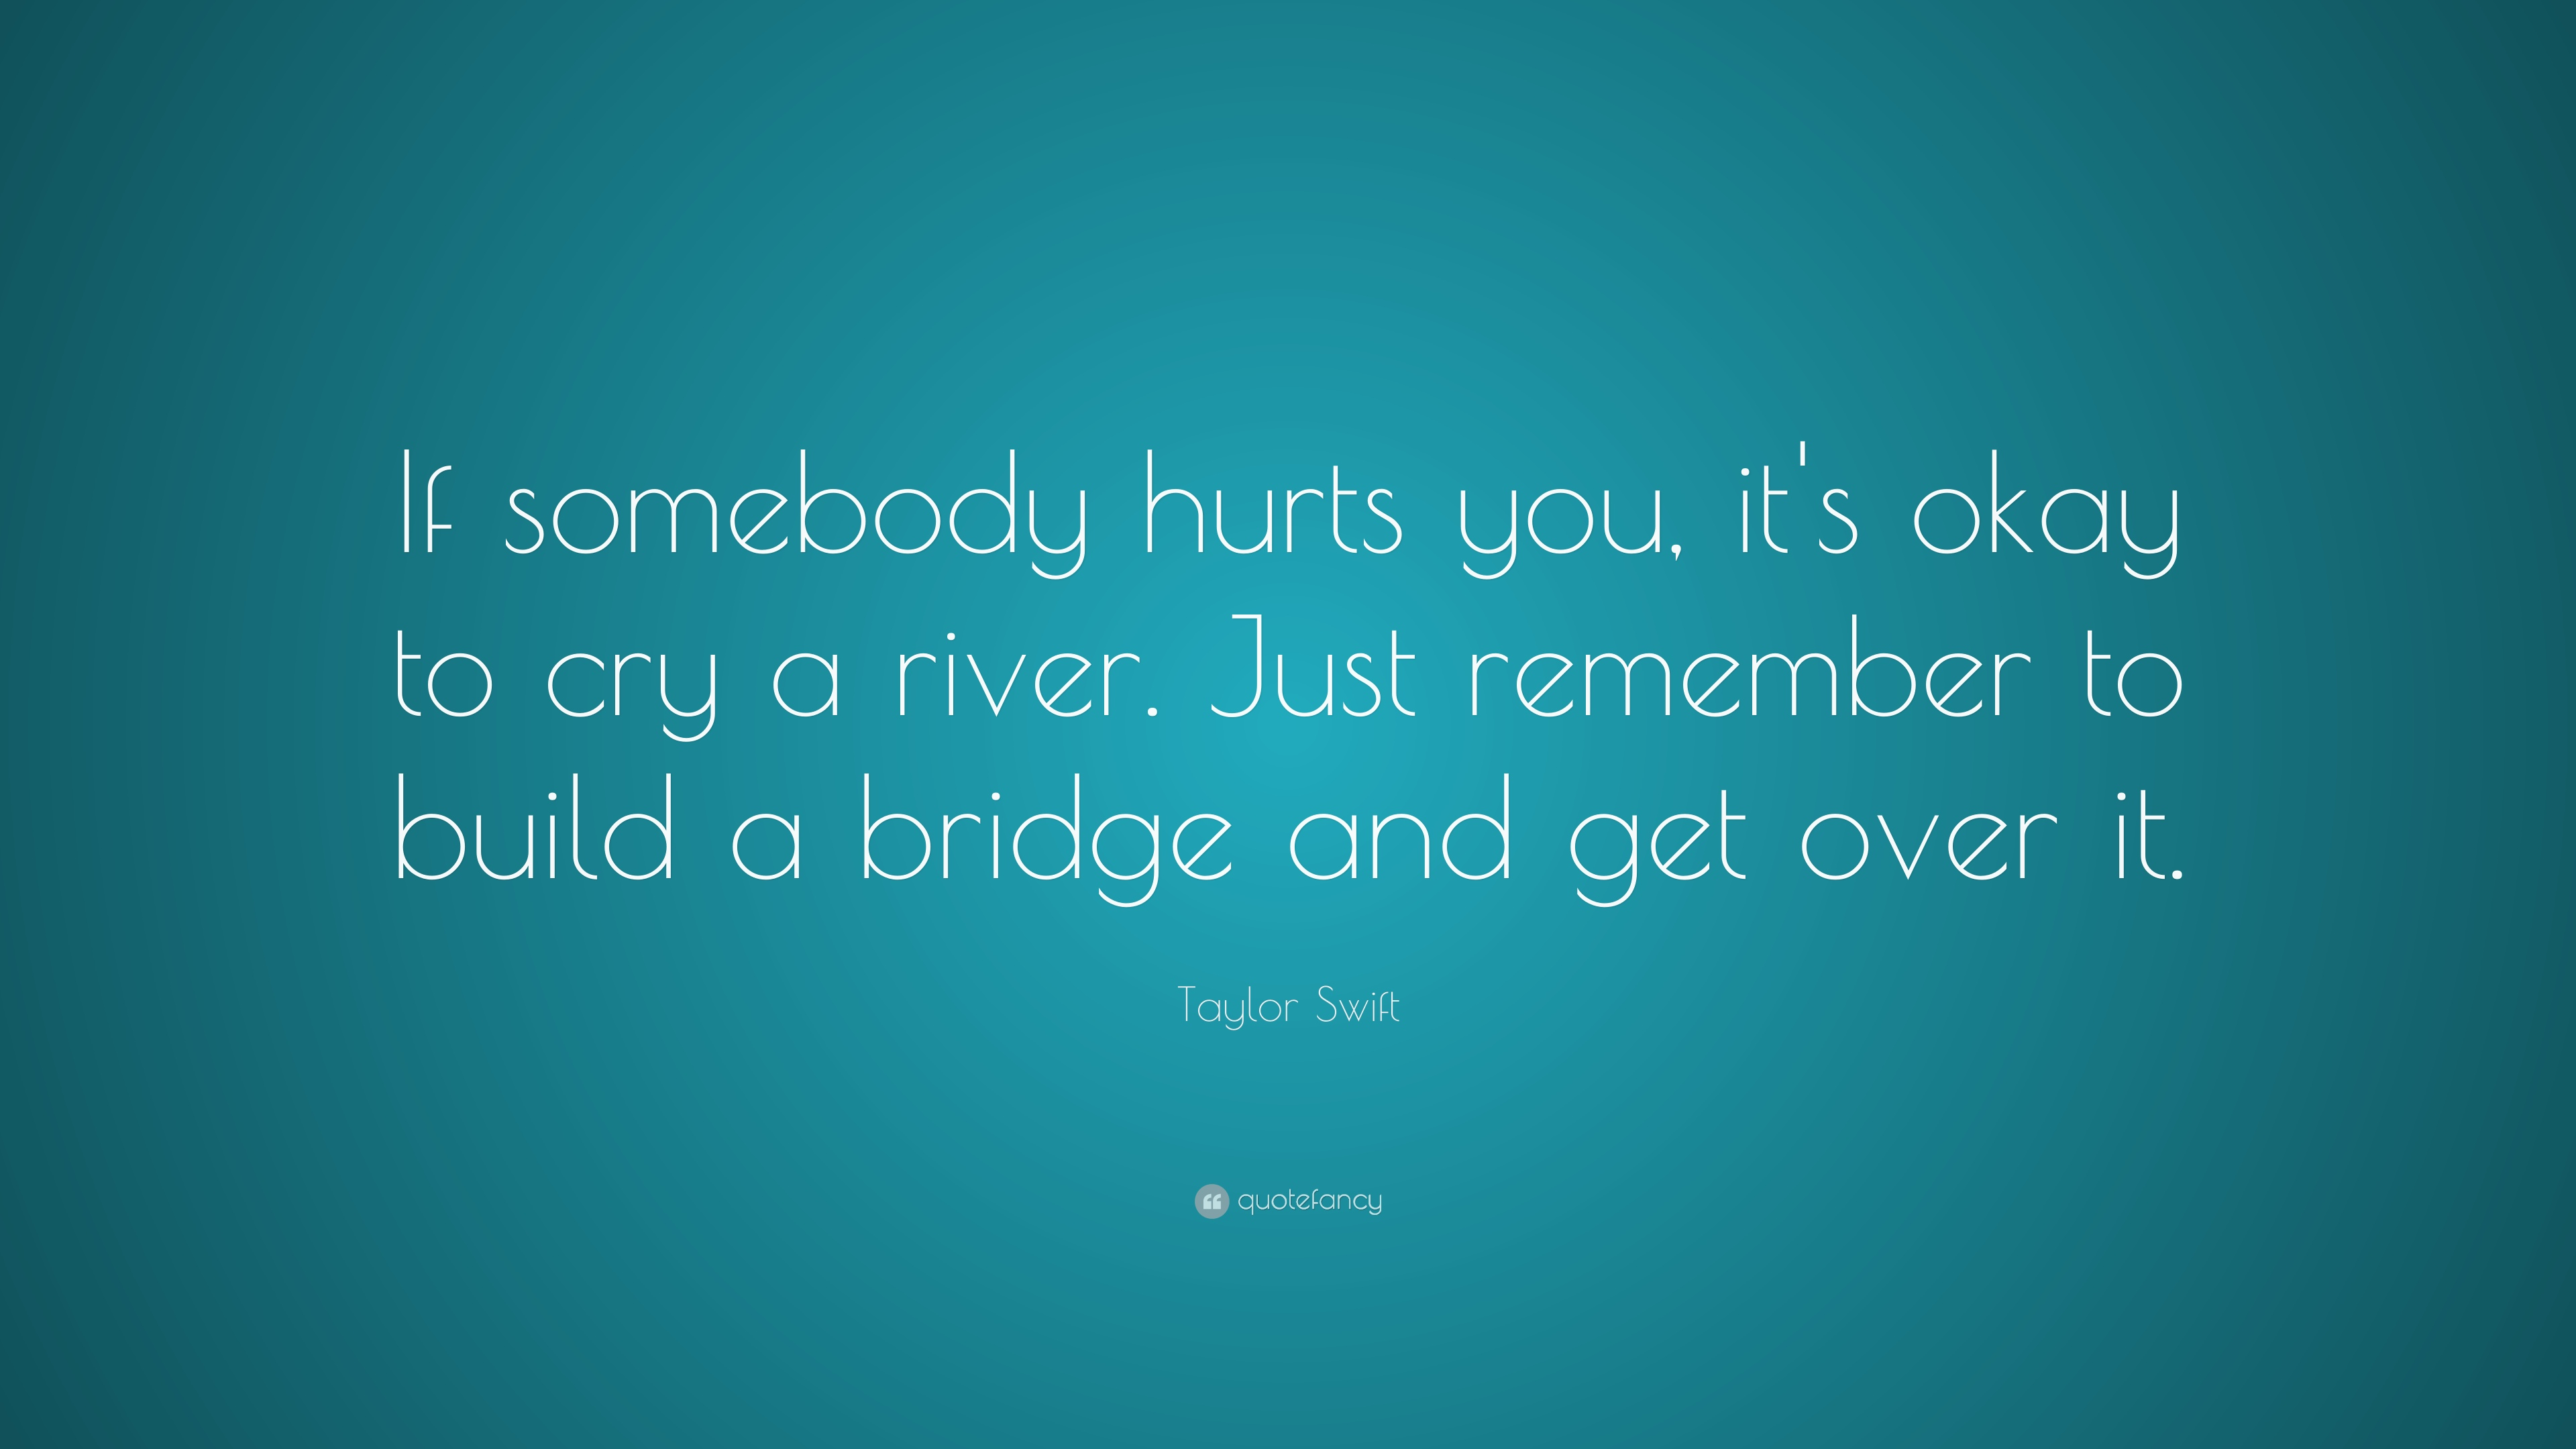 Kurt Cobain Quotes Wallpaper Taylor Swift Quote If Somebody Hurts You It S Okay To